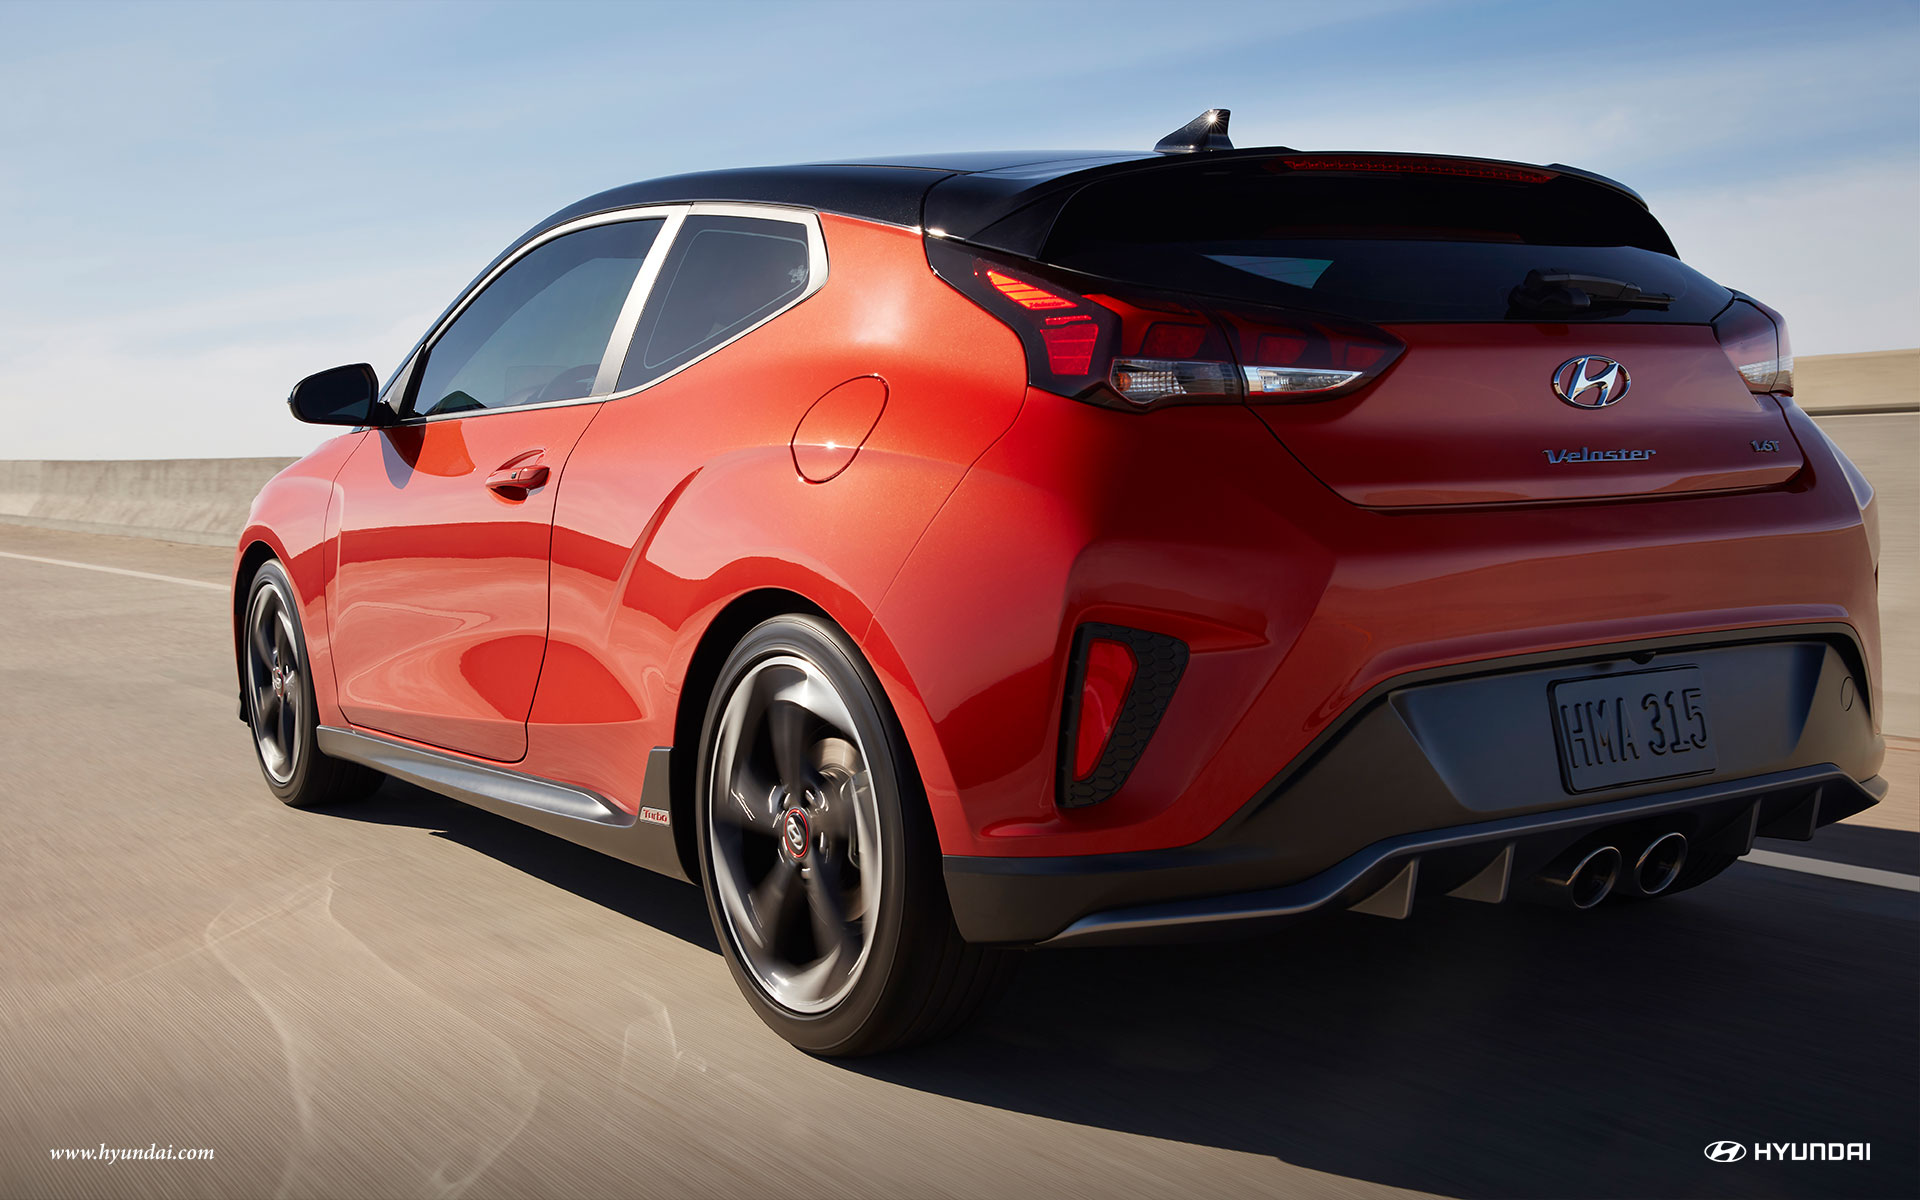 Michigan REVIEW - 2019 Hyundai Veloster's OVERVIEW